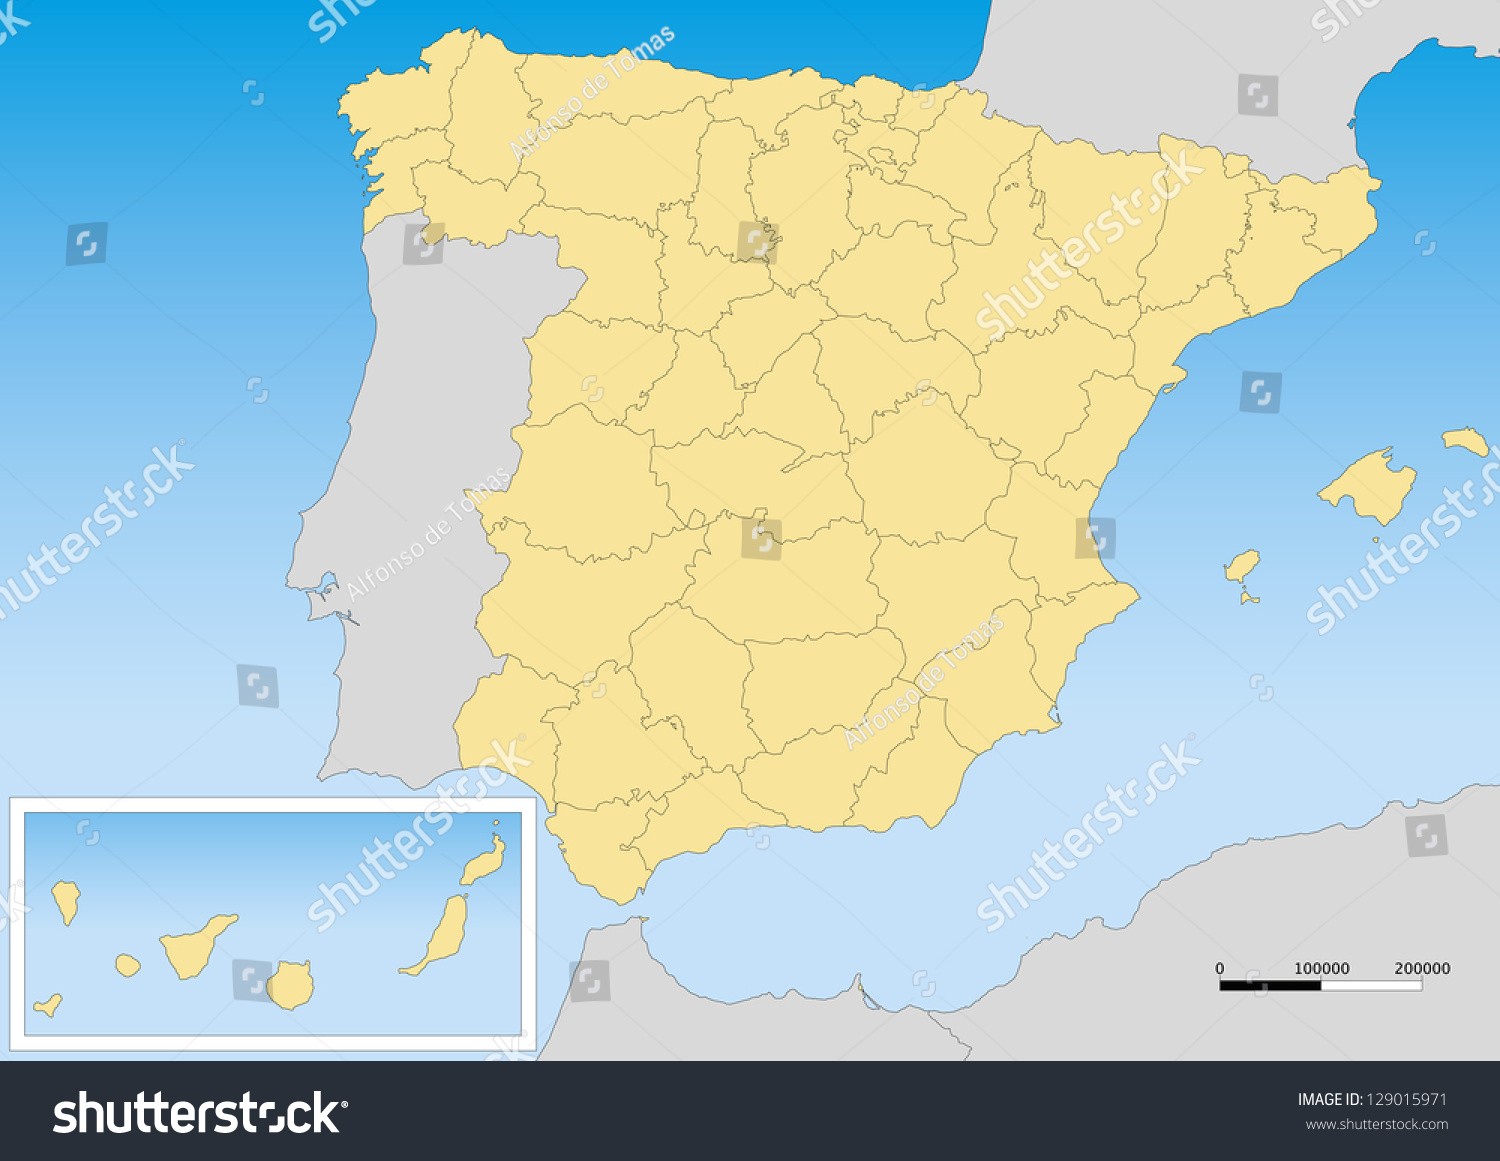 Map Of Spain And Its Islands.Map Spain Provinces Islands Scale 15000000 Stock Vector Royalty